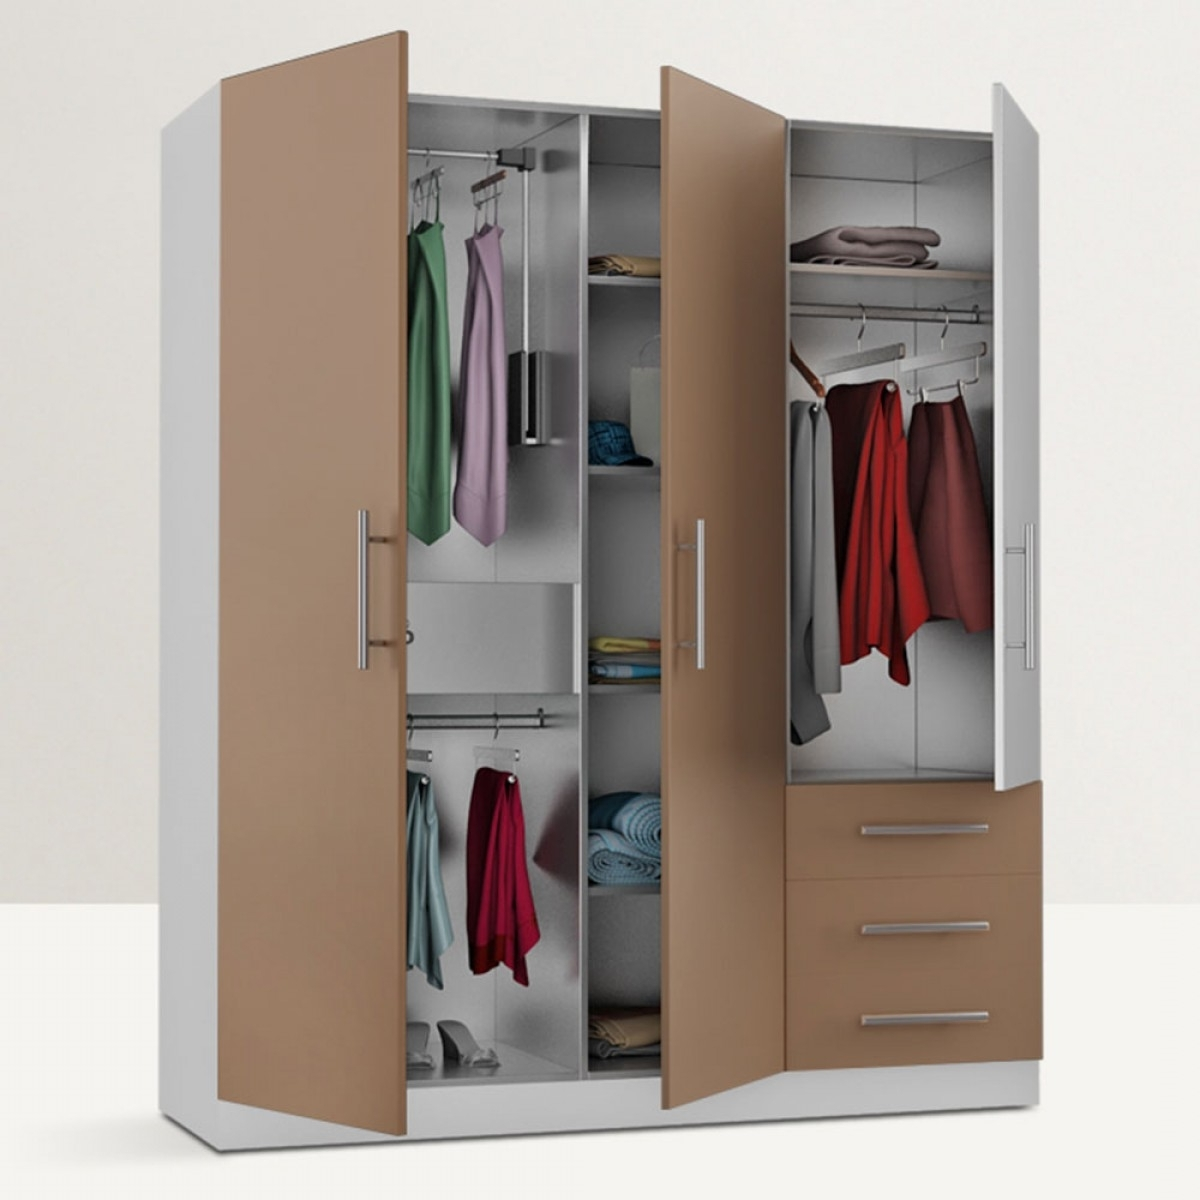 Homeplus Freestanding Triple Door Wardrobe Regarding Latest Triple Door Wardrobes (View 5 of 15)